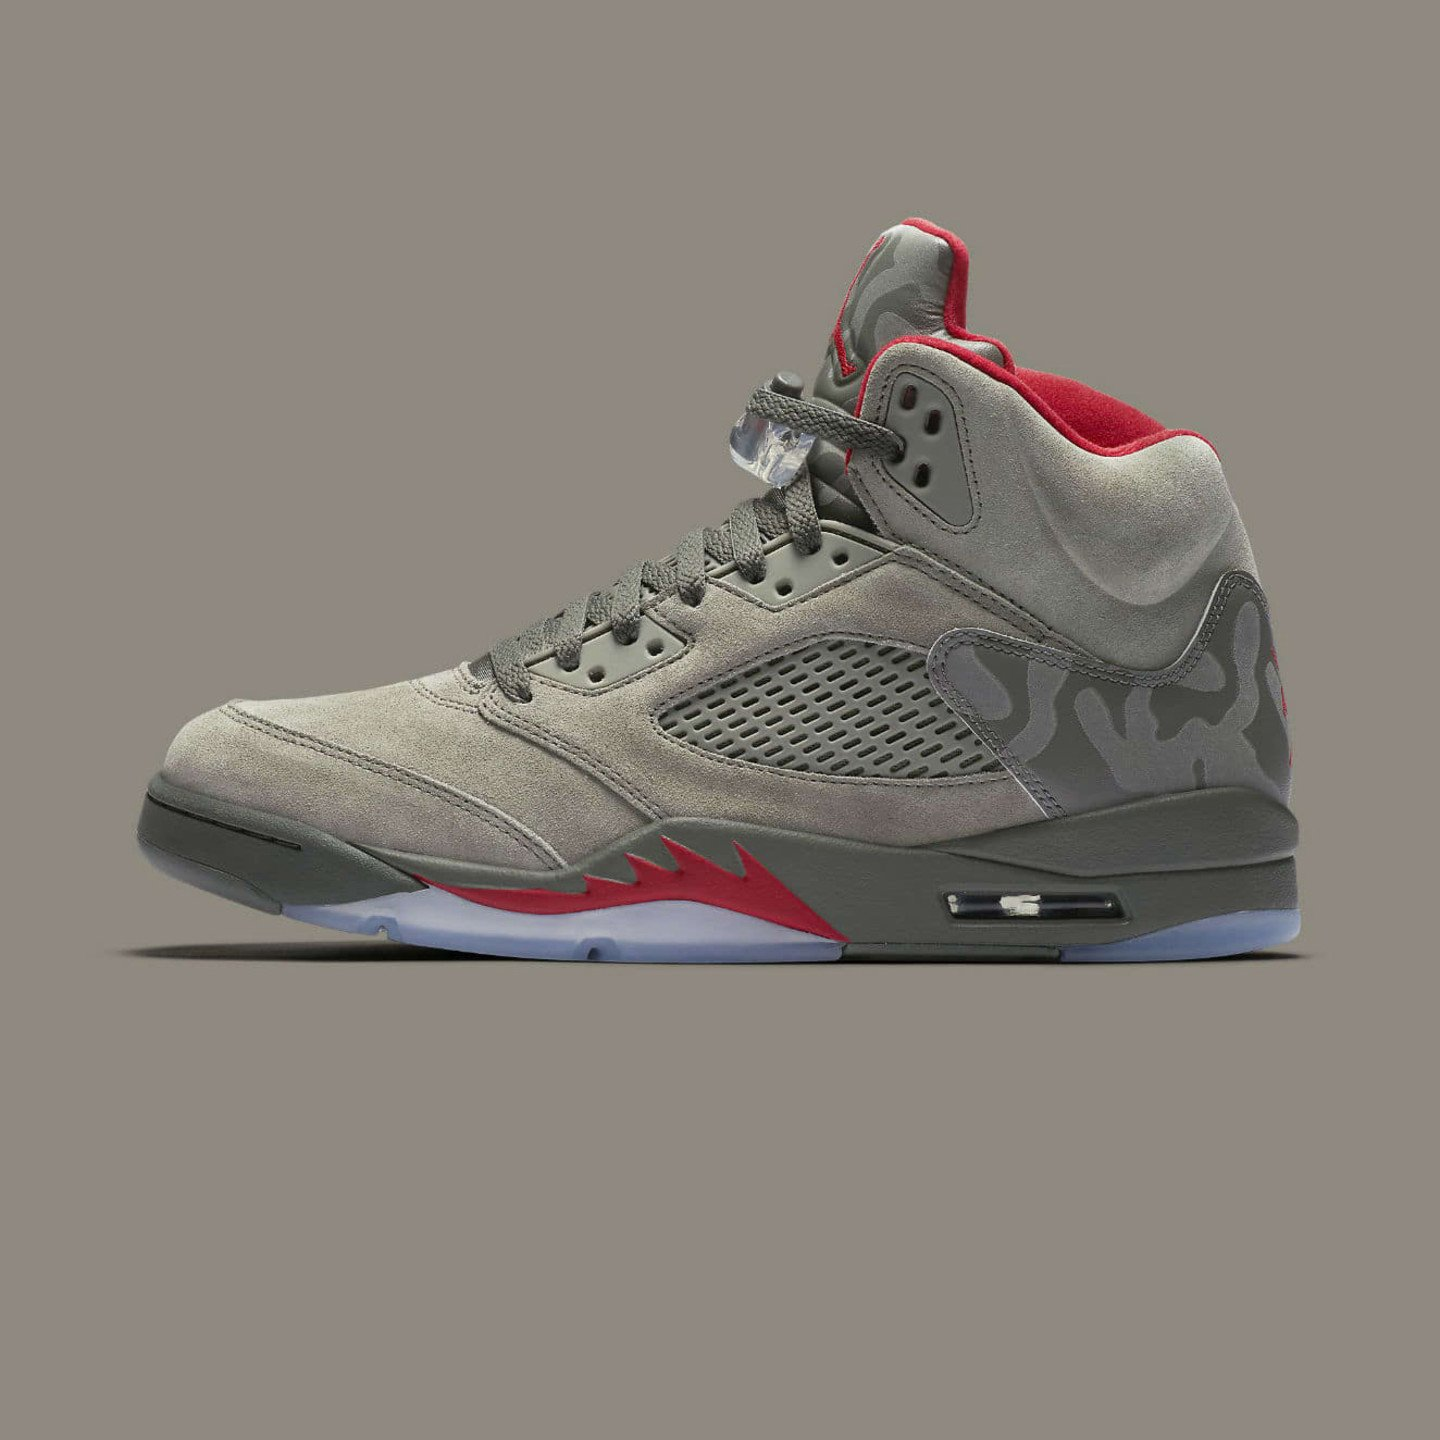 Jordan Air Jordan 5 Retro 'Fighter Jet Camo' Dark Stucco / Fire Red 136027-051